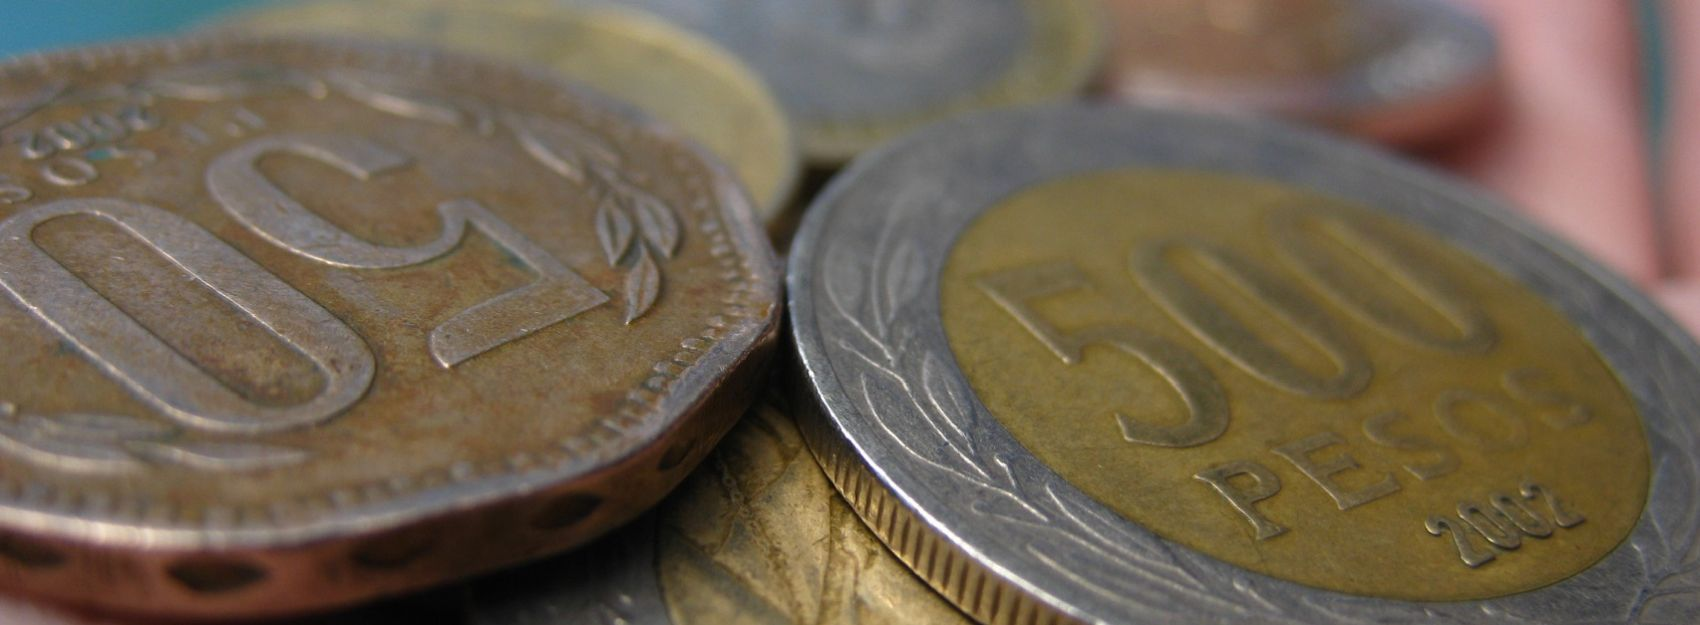 Peso Coins Close-Up Shot